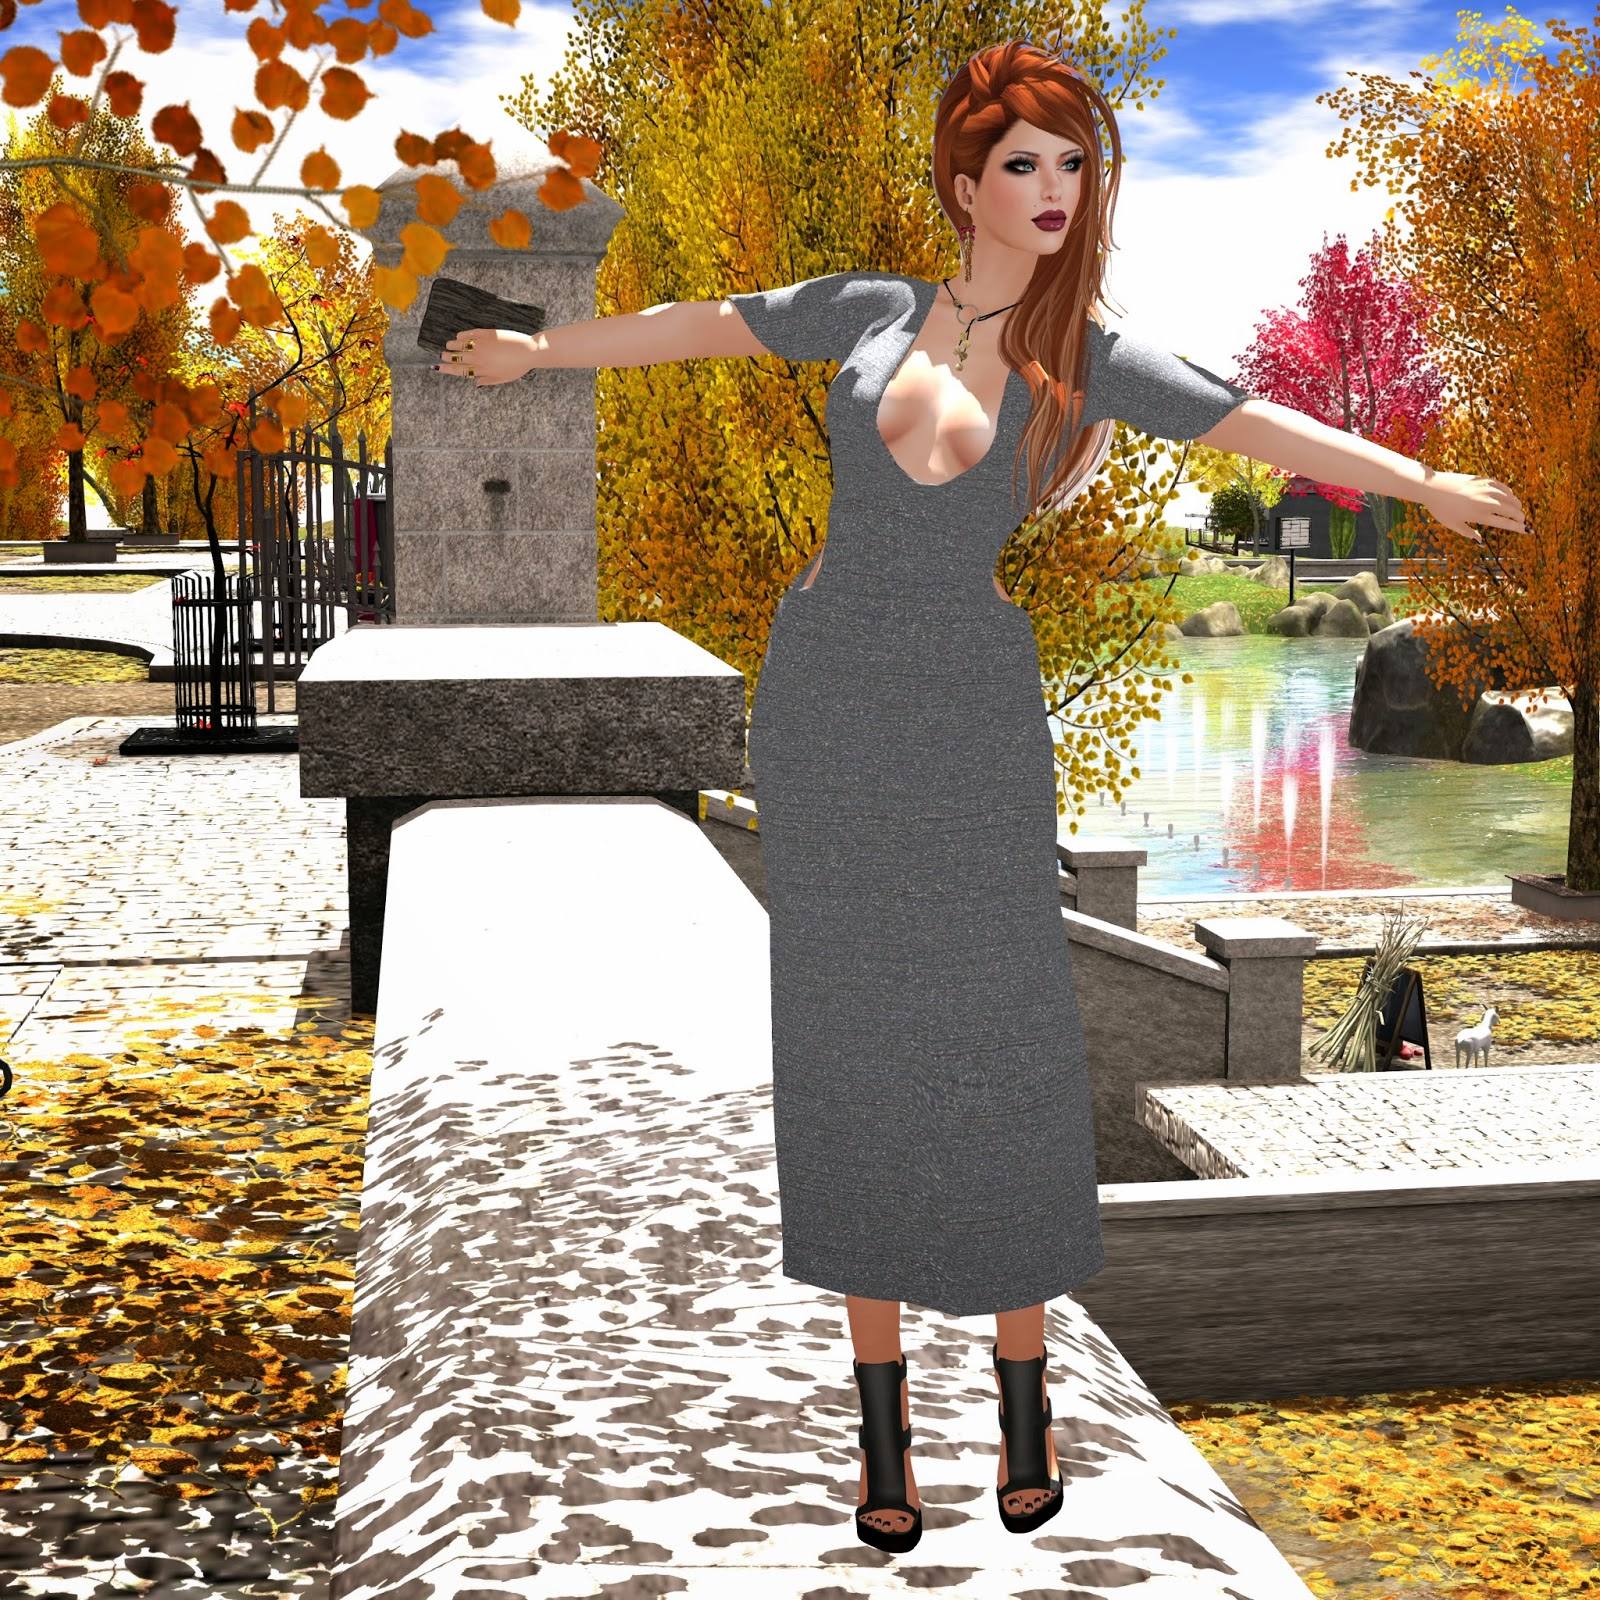 lushish catz kingdom dress,exile hair,miss canning queenie shoes